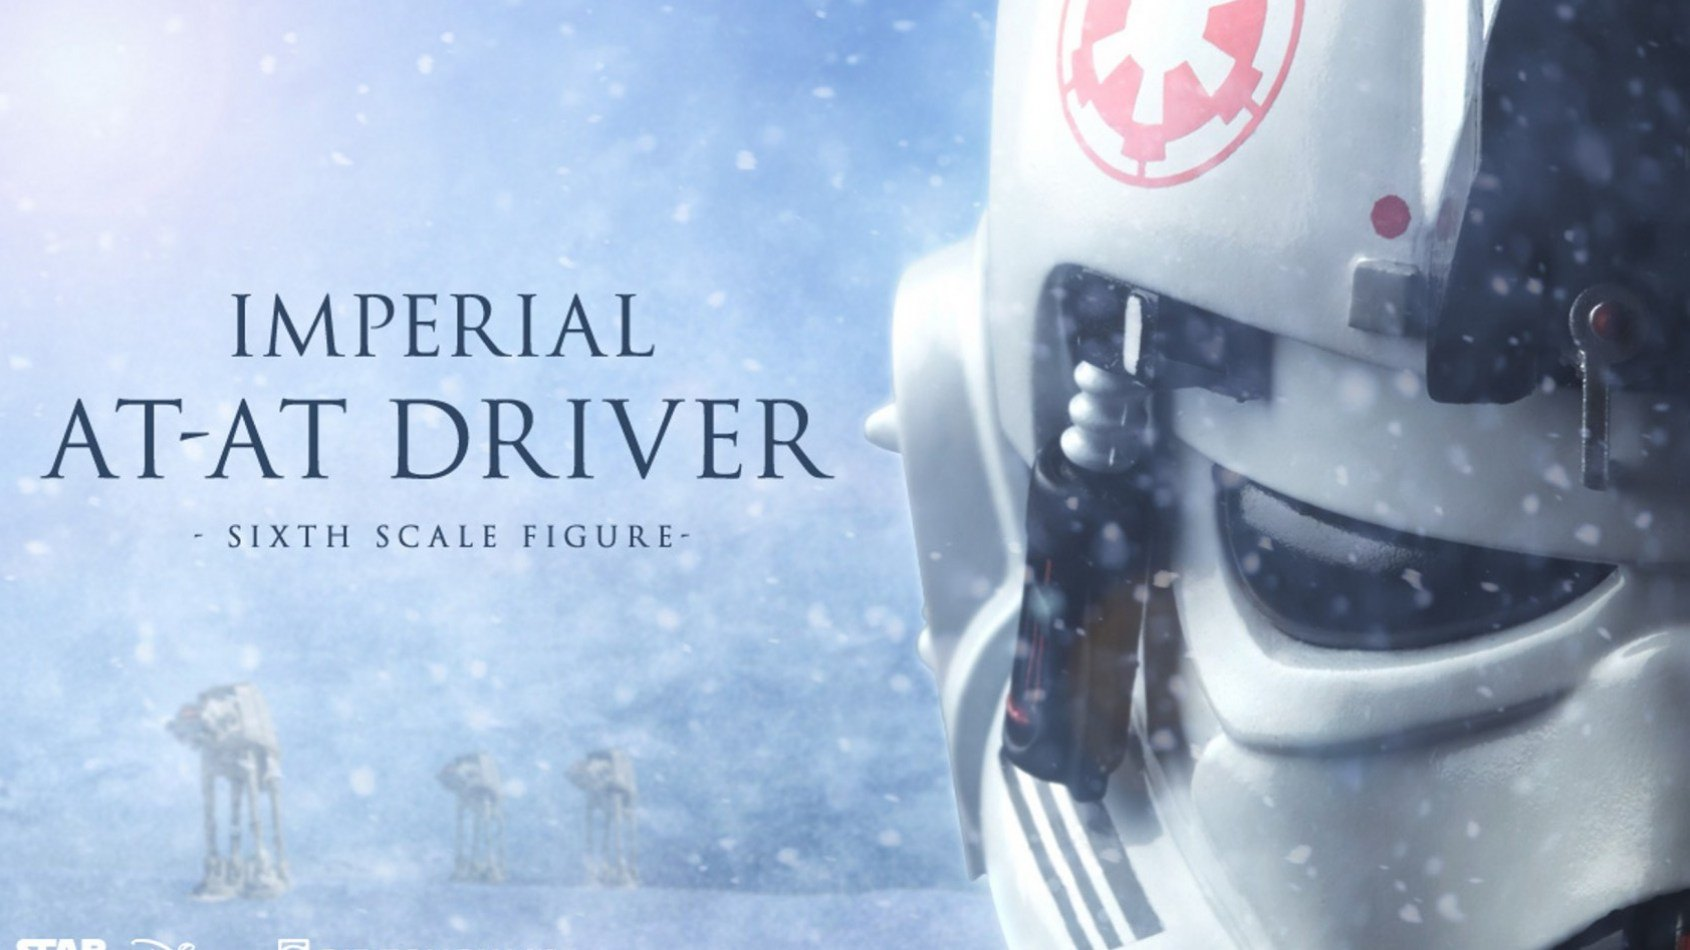 [Sideshow Collectibles] AT-AT driver sixth scale figure